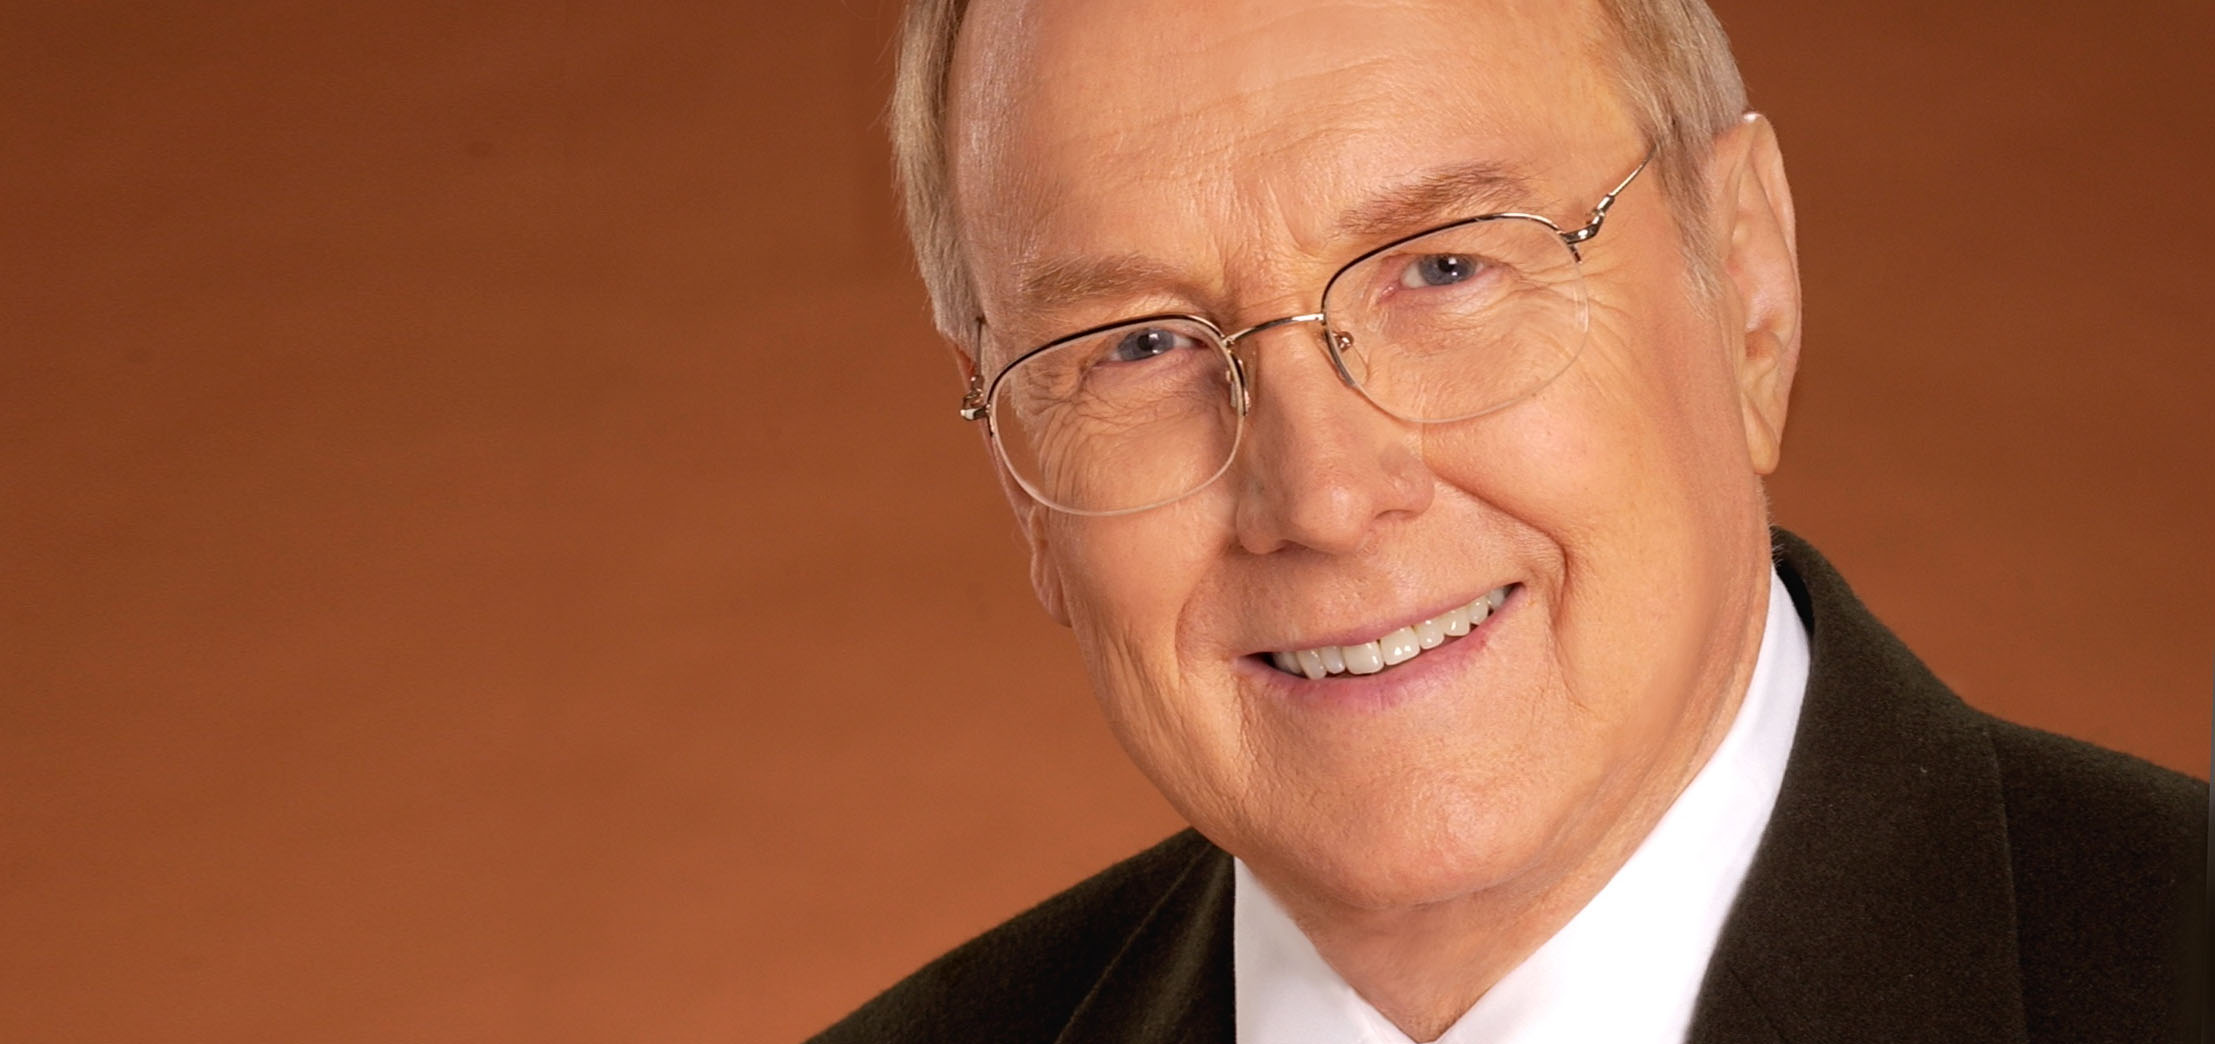 James Dobson, Ph.D. - Founder and former President of Focus on the Family. He is now founder and President of Family Talk. He is the author of more than 30 books dedicated to the preservation of the family. You can find him at drjamesdobson.org.